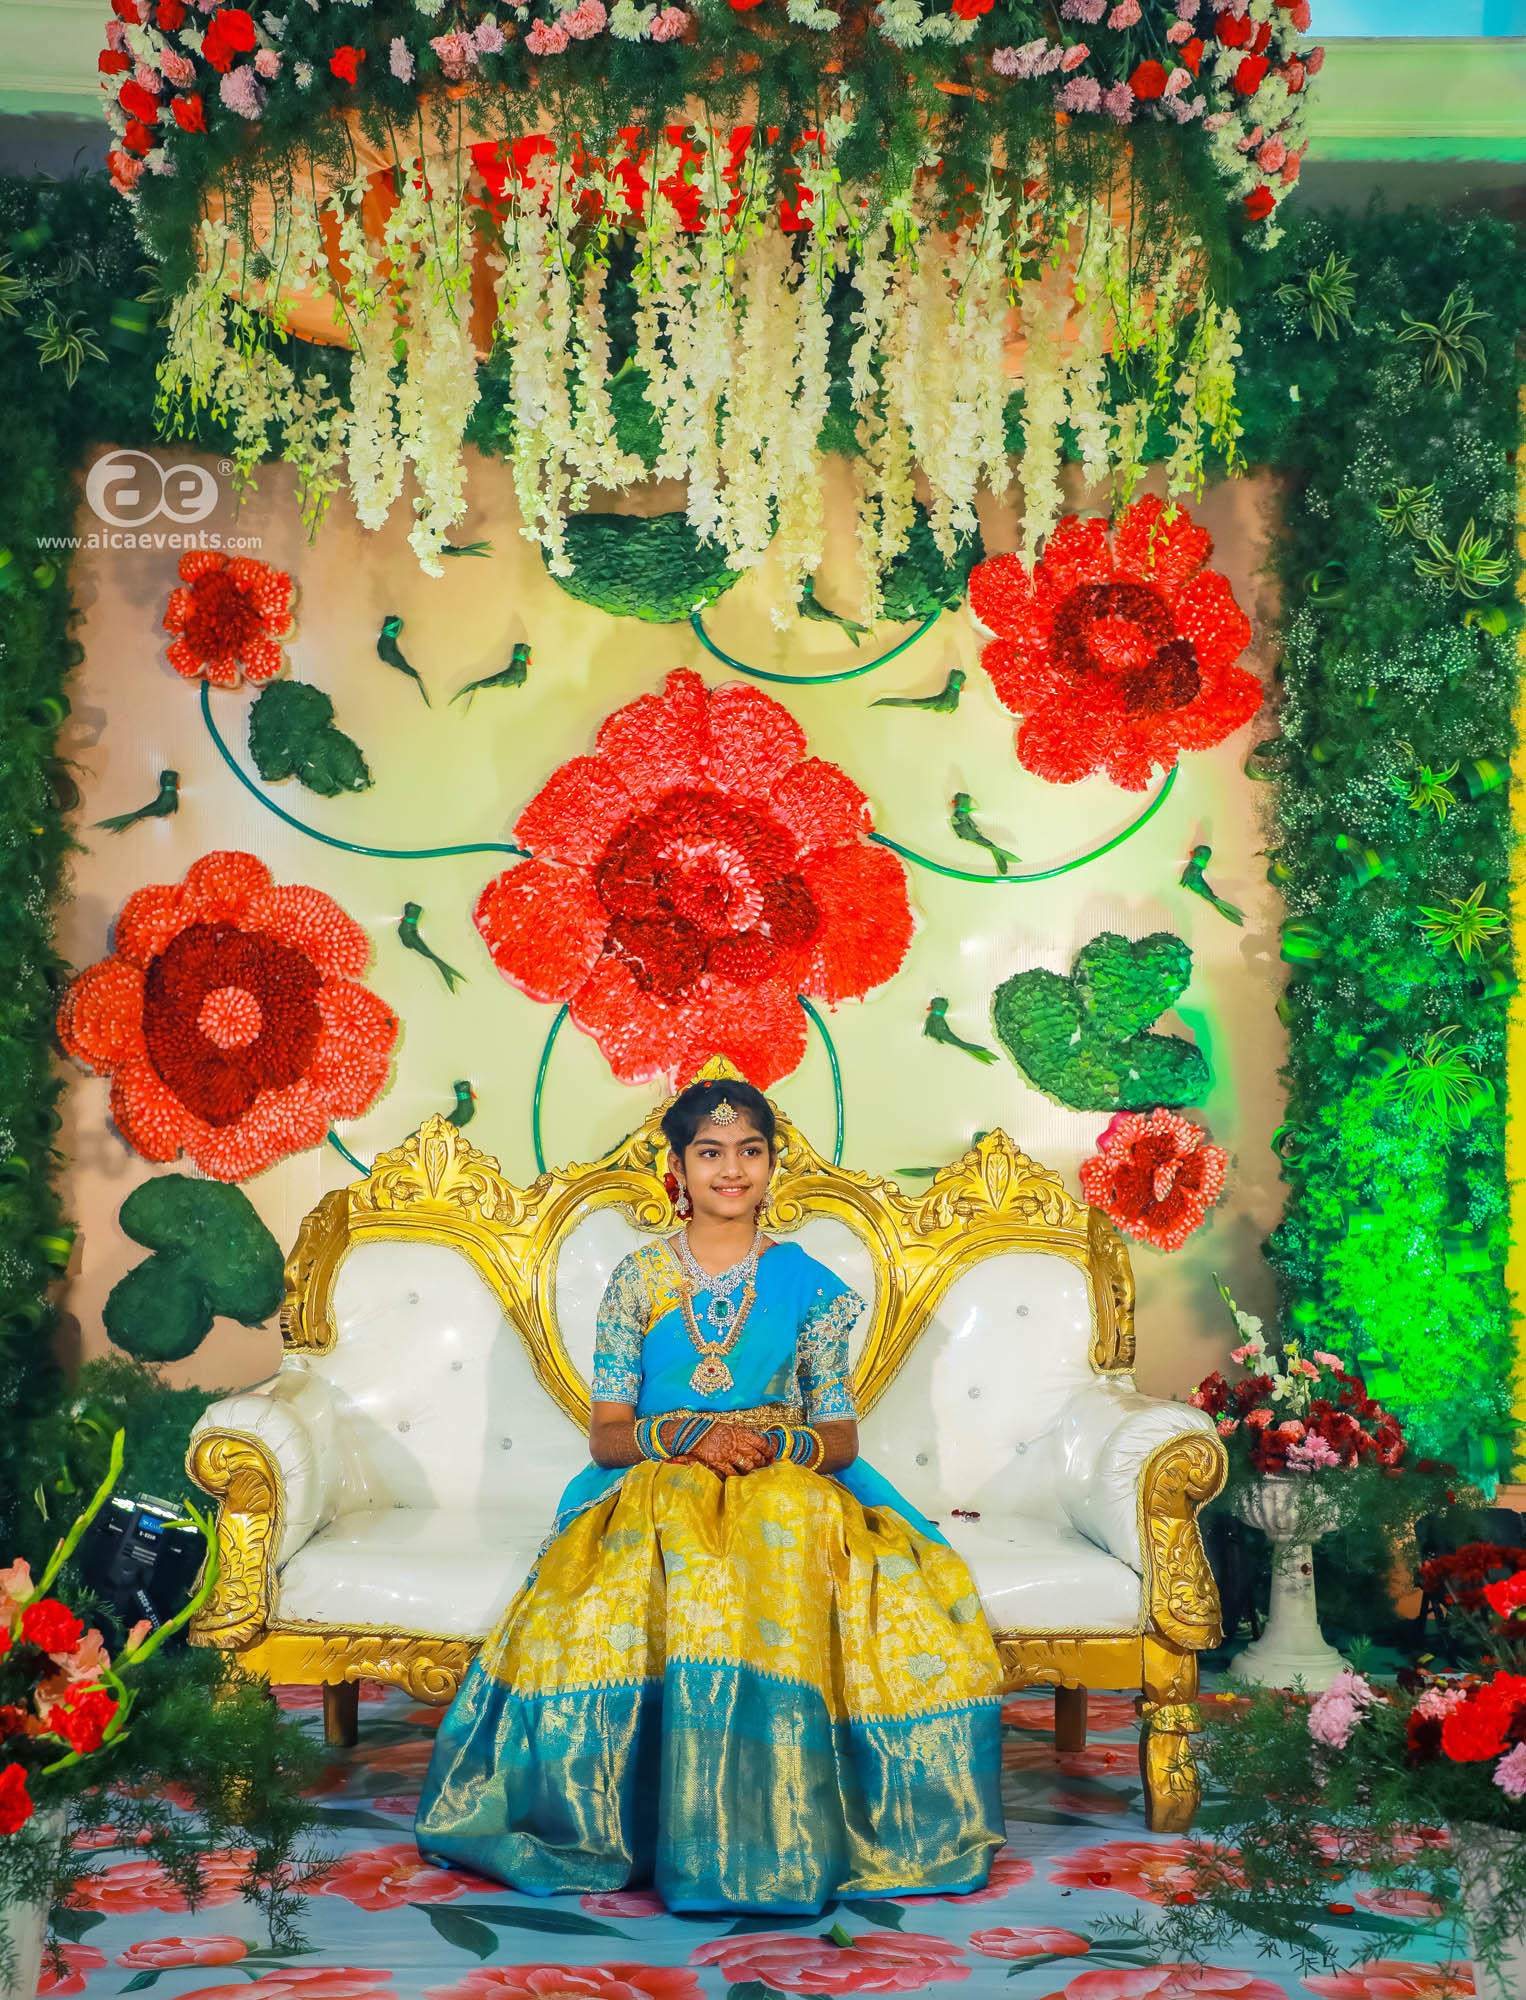 Halfsaree-Decoration-by-aicaevents